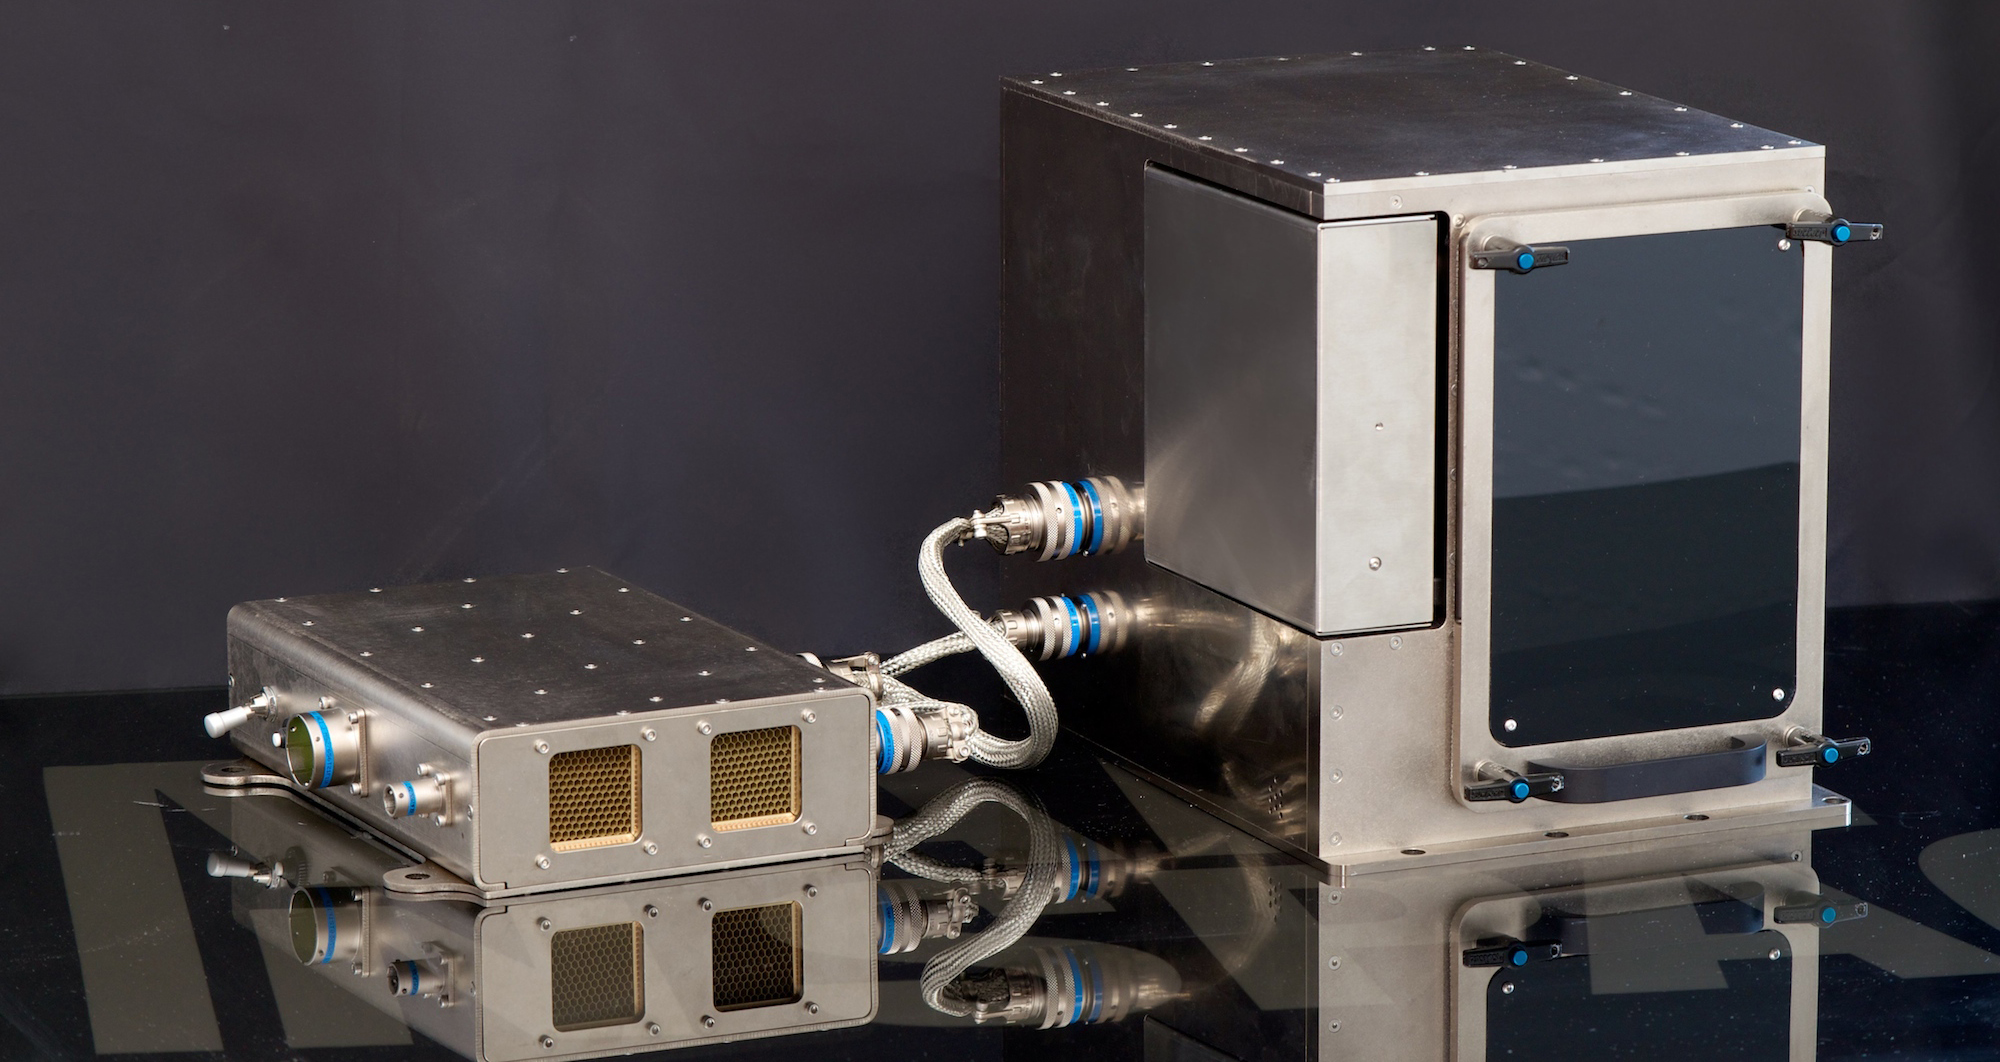 NASA Is Blasting the First 3D Printer Into Space Tonight